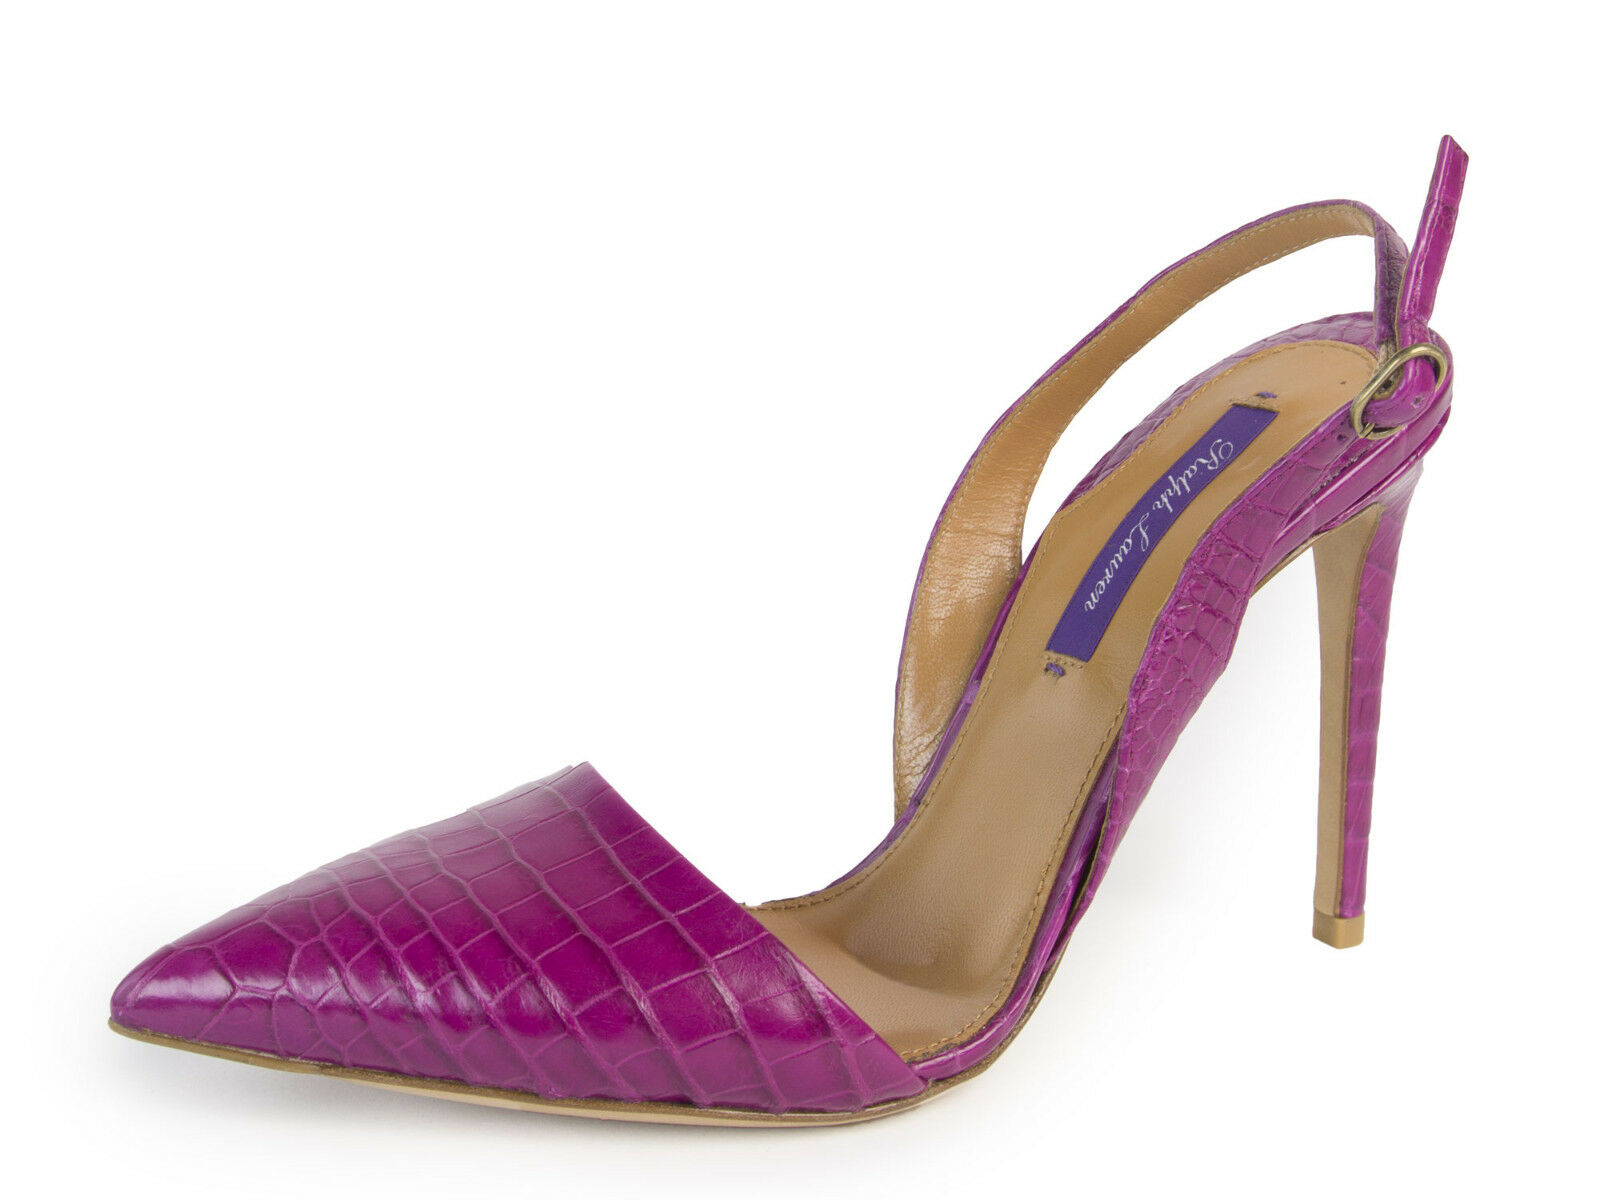 RALPH LAUREN Purple Label Cece Magenta Alligator Slingback Pumps Sz 7  4,000 NEW